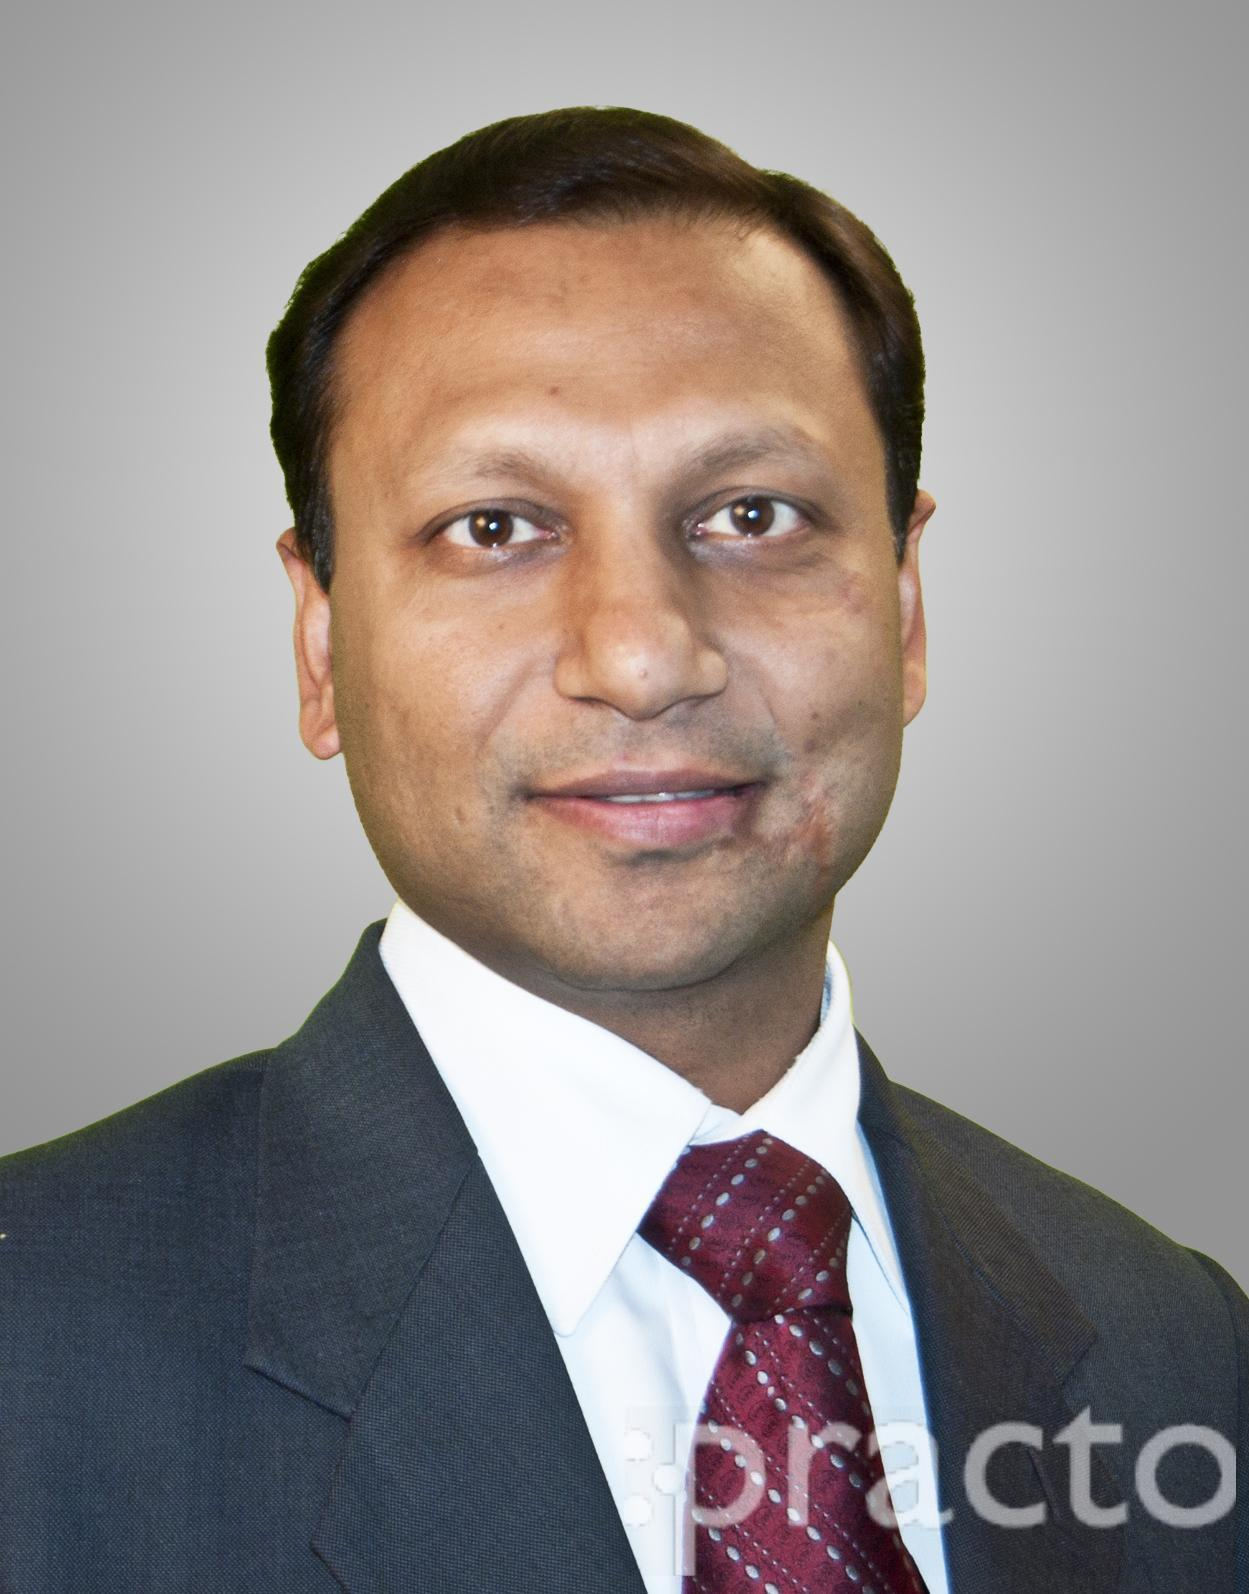 Dr. Raman Mittal - Ophthalmologist